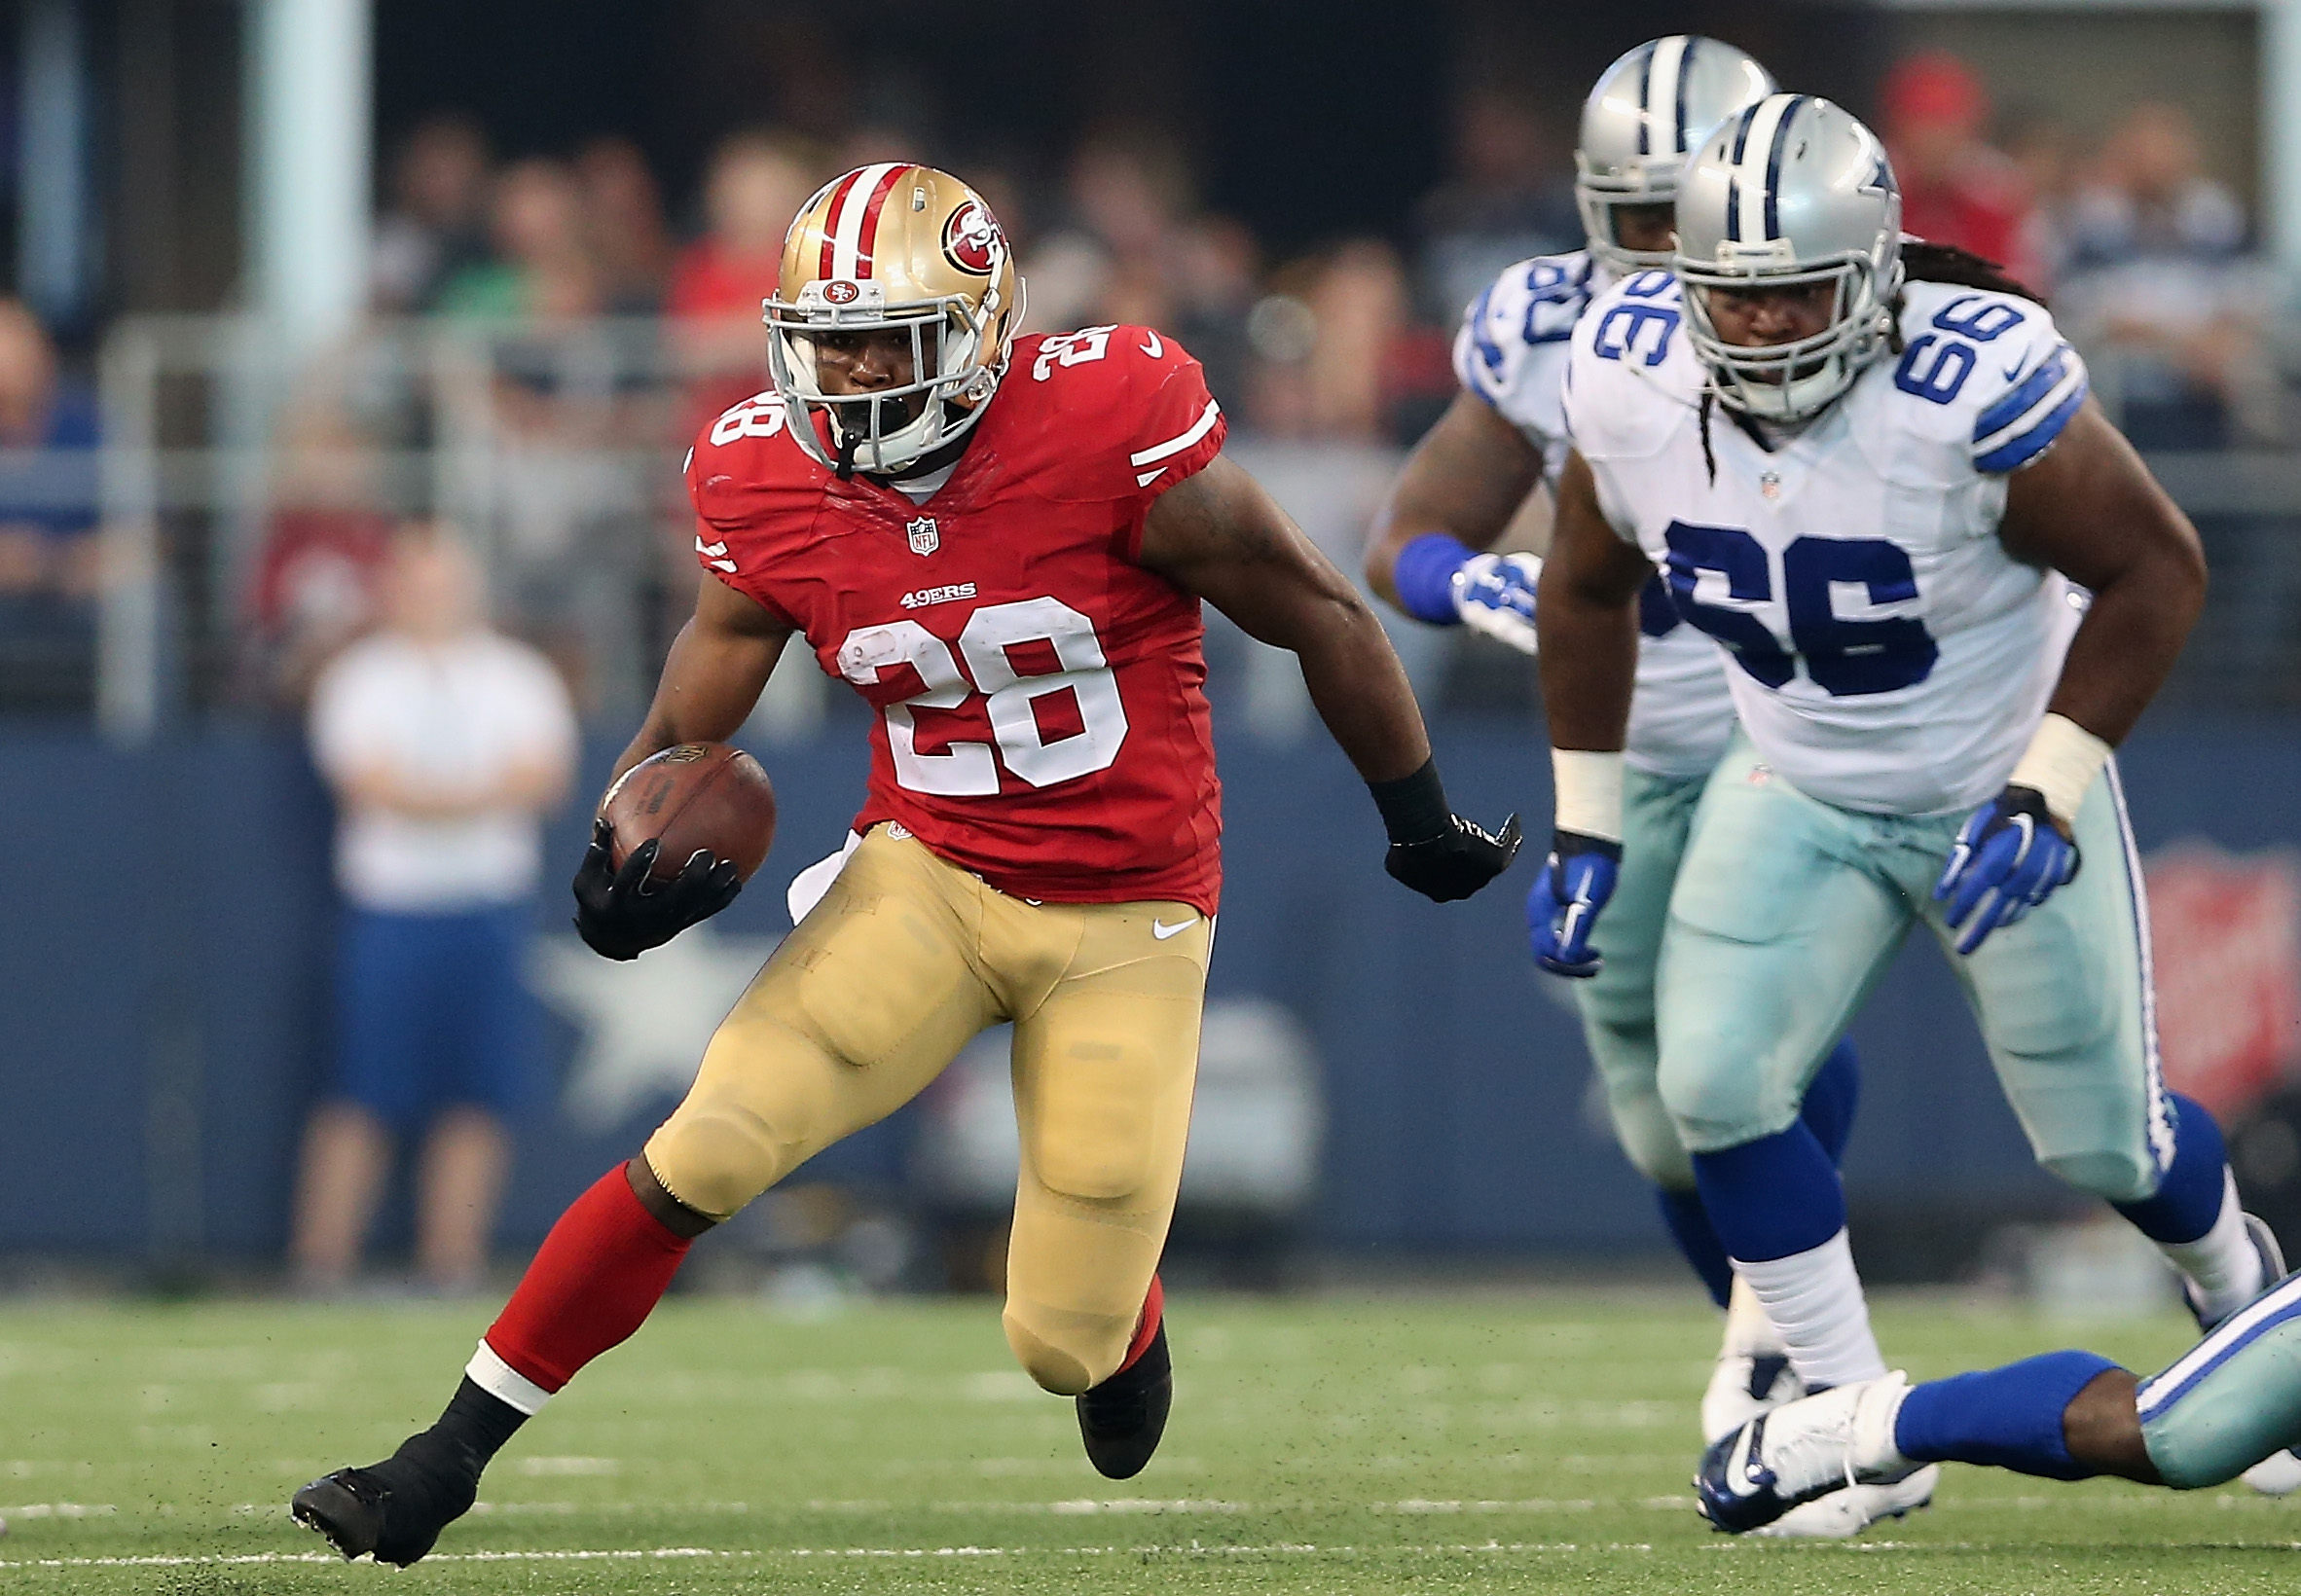 The Star News - Cowboys At 49ers: ITS Staff Notes, Predictions, And A Dallas Watching Party